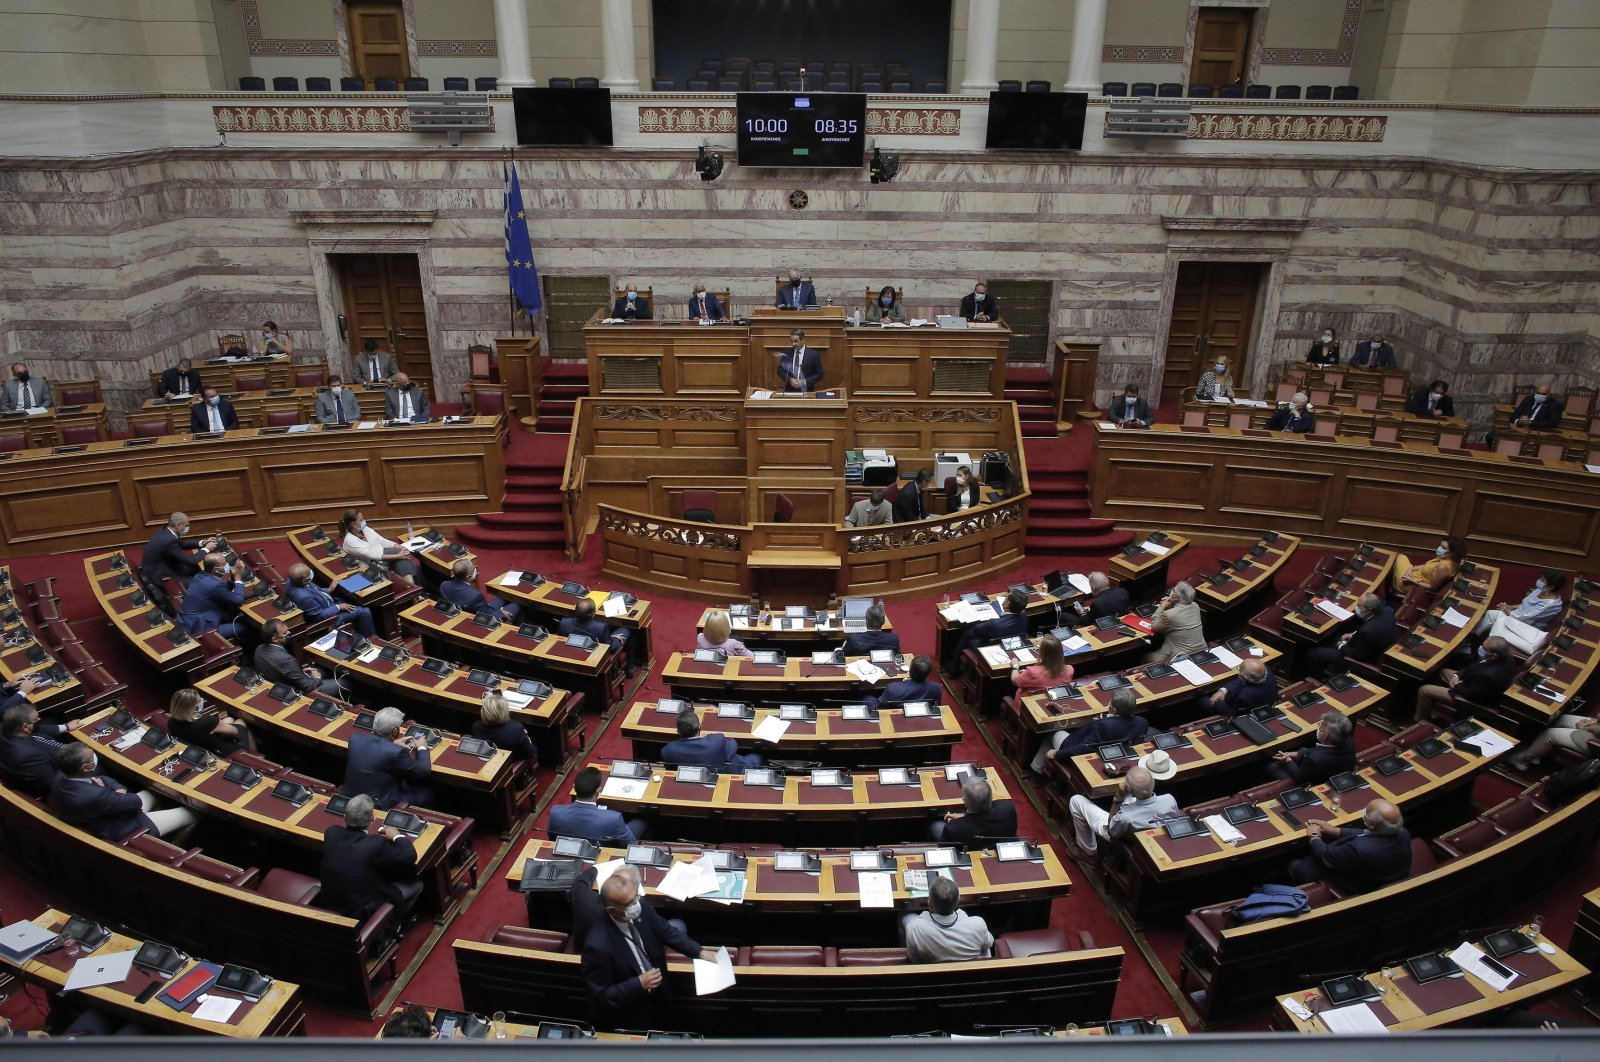 Greek Prime Minister Kyriakos Mitsotakis delivers a speech during a debate in the Parliament in Athens, Greece, Aug. 26, 2020. (EPA Photo)